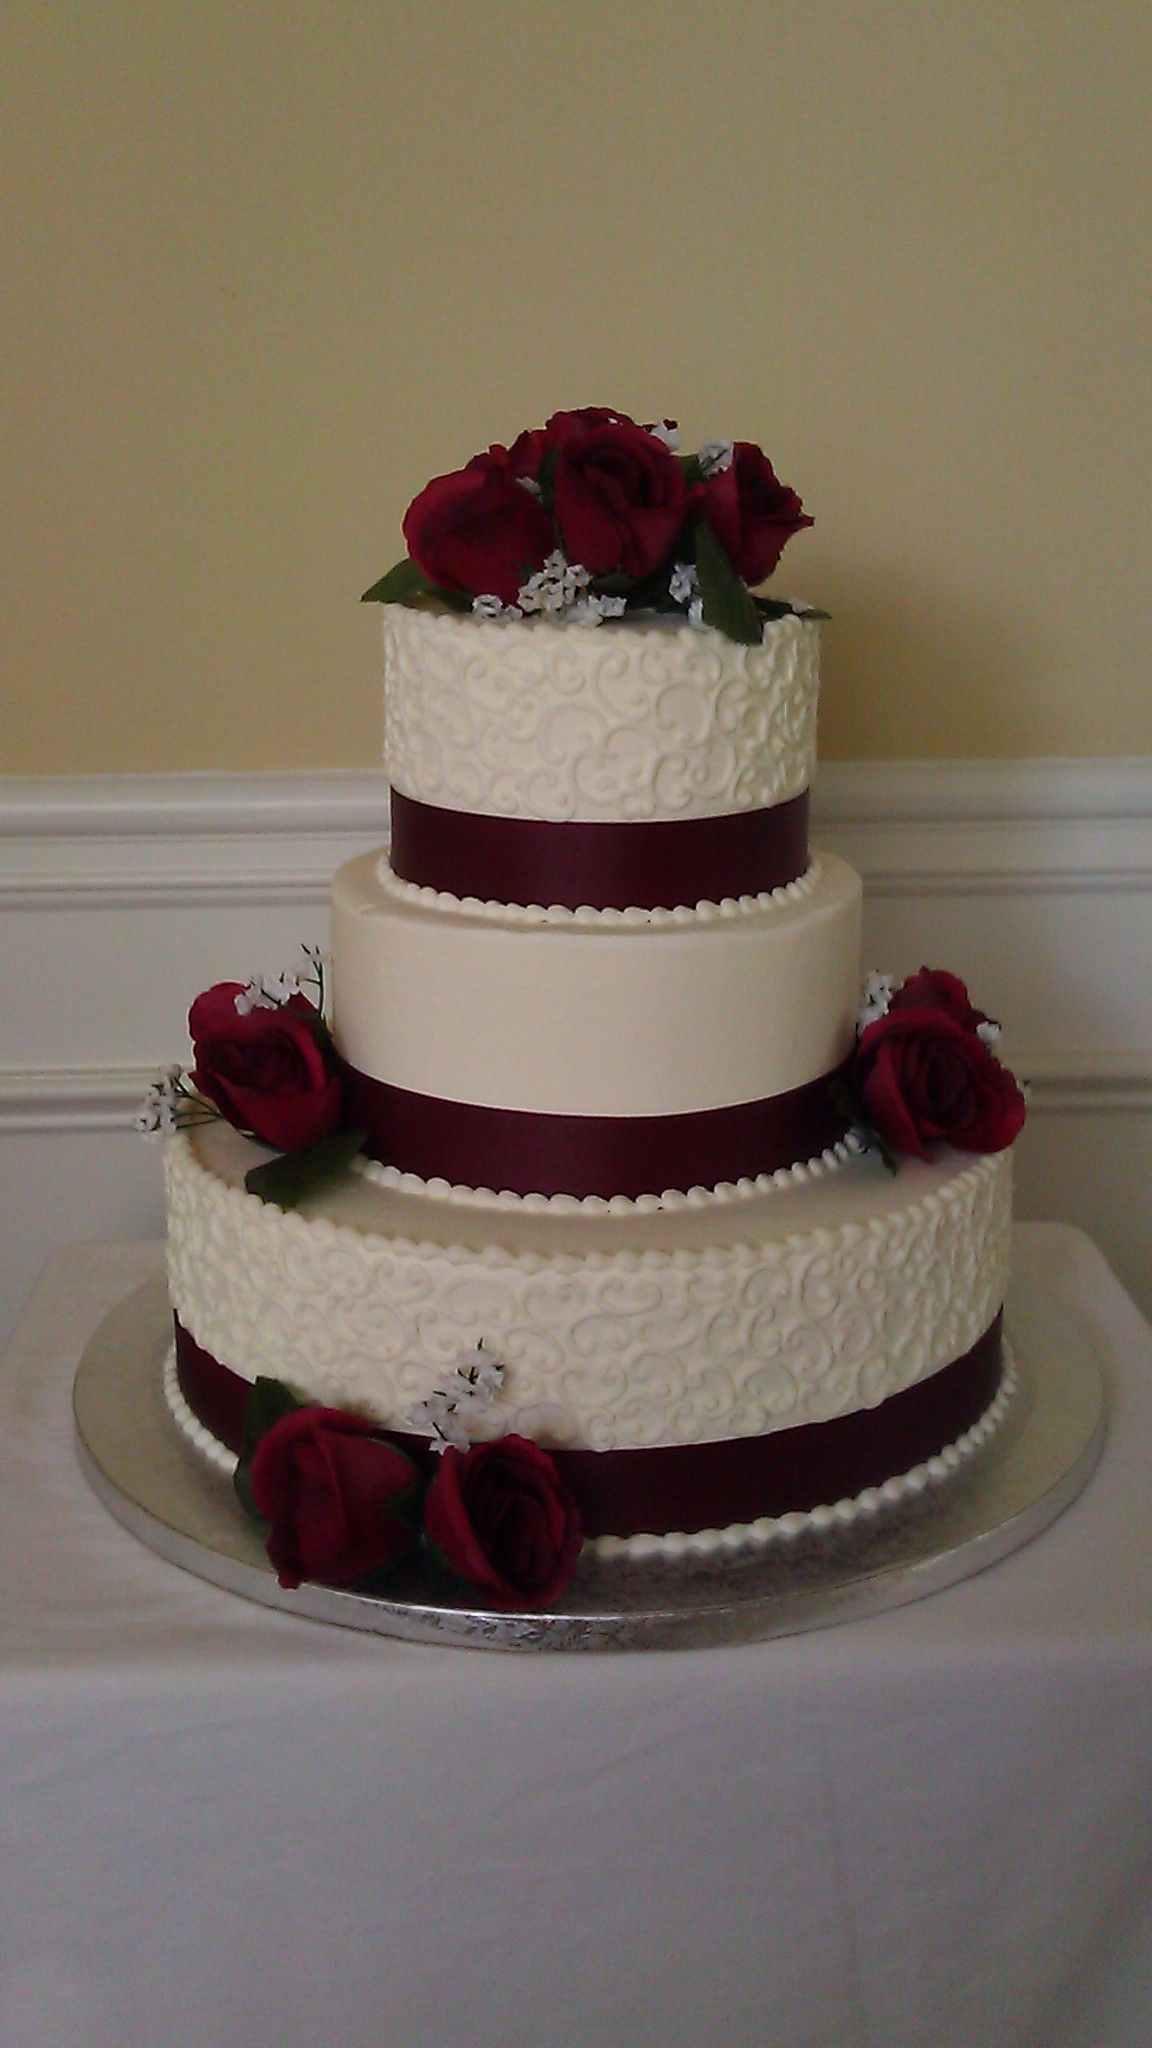 Elegant Burgundy And Soft White Buttercream Wedding Cake Very Pretty Only I Would Want It In Ivory With Maybe Dahlia Or Calla Lilies Instead Of Roses